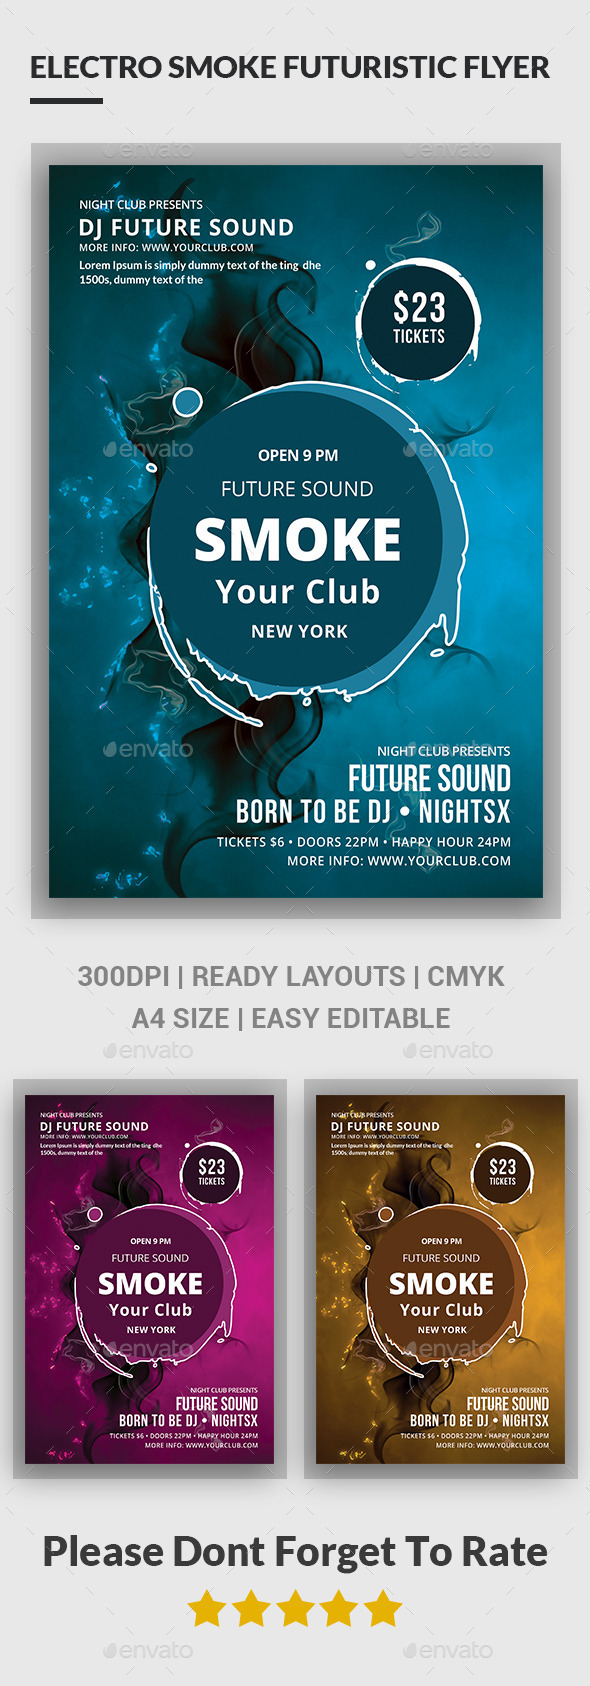 Electro Smoke Futuristic Flyer - Clubs & Parties Events